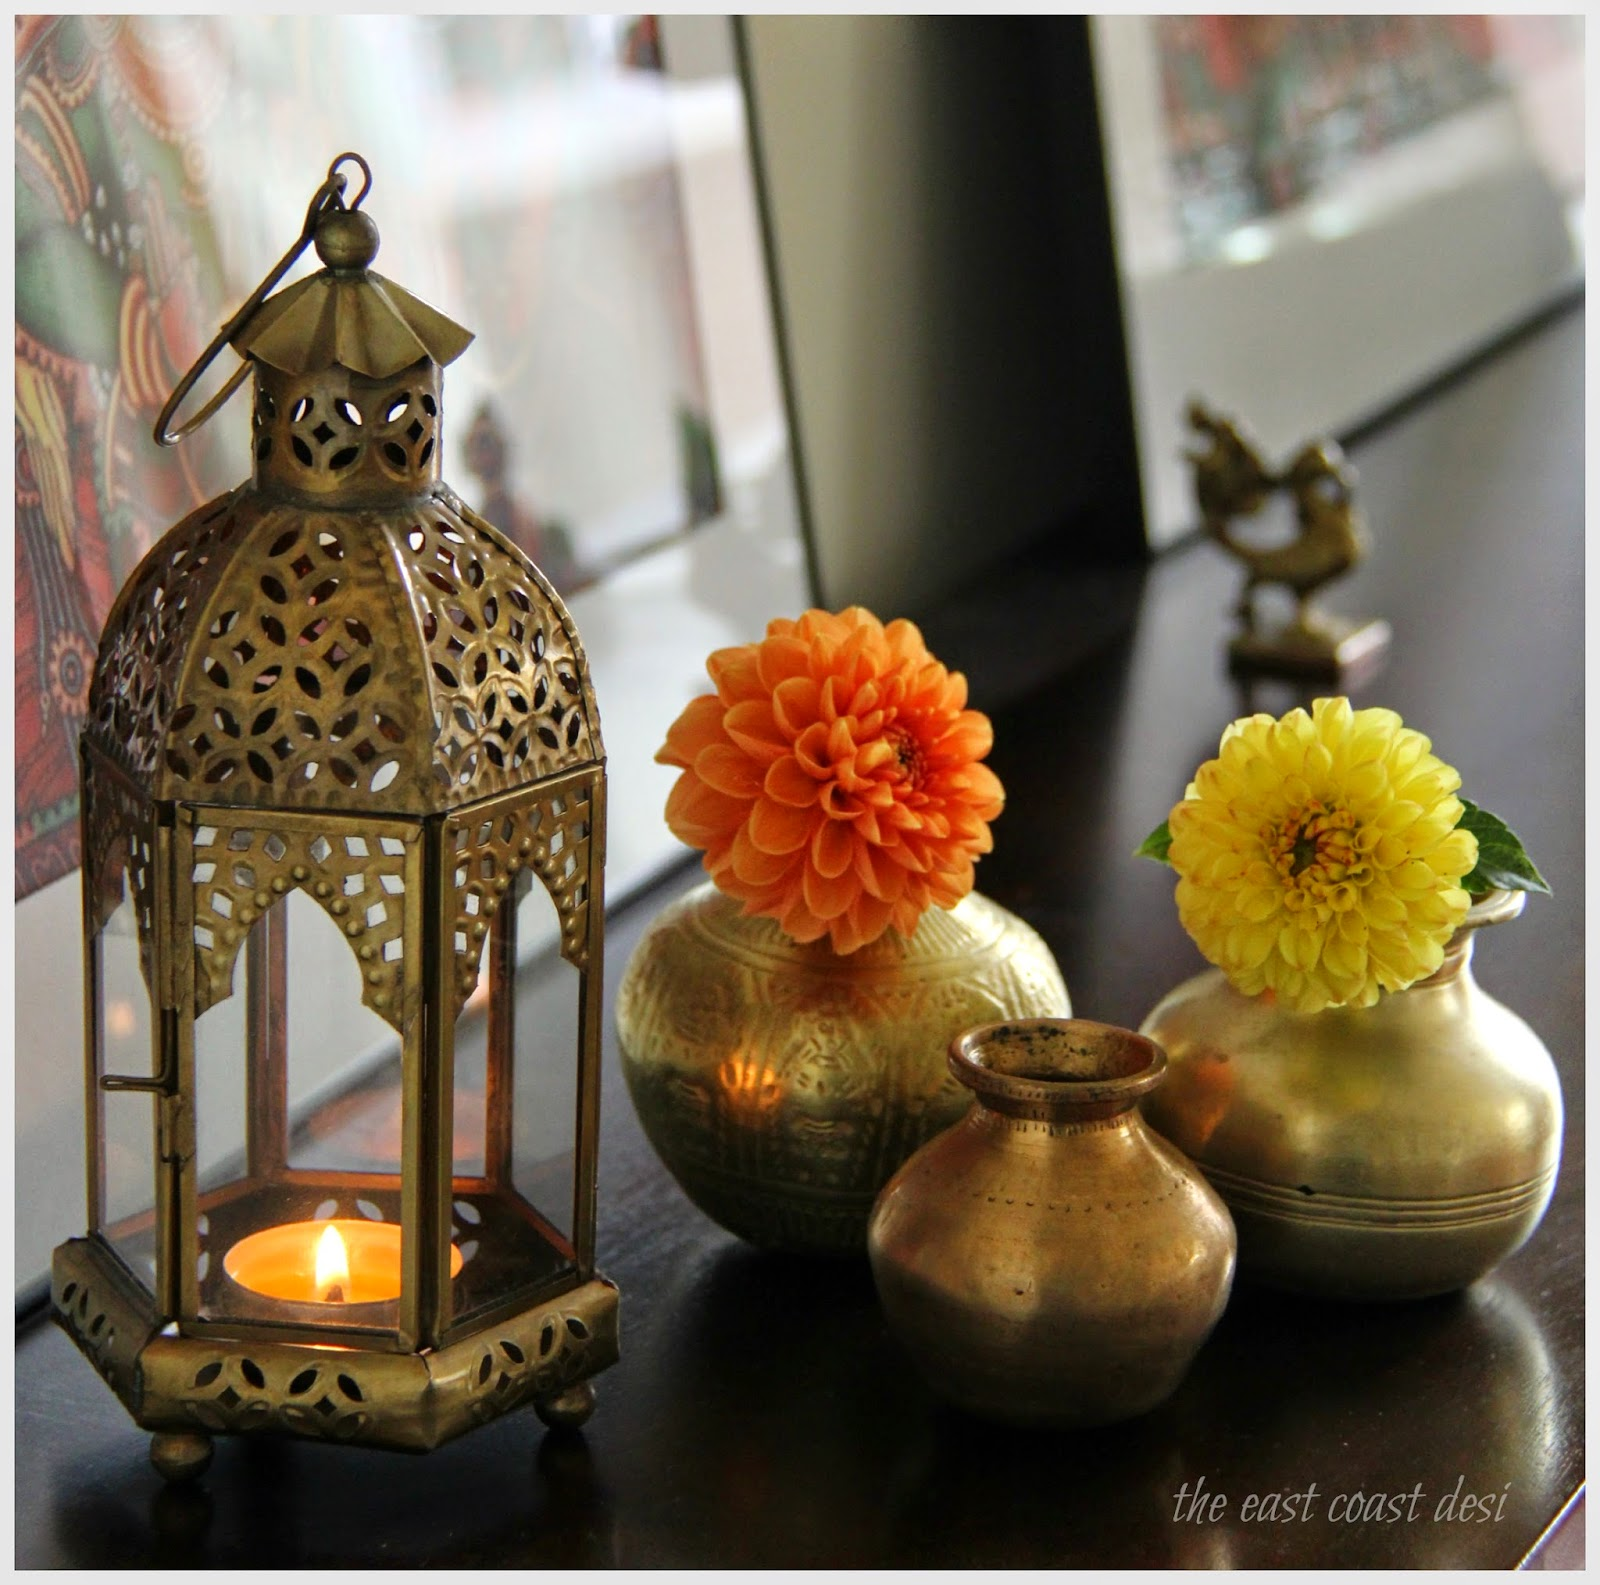 Flowers Decoration For Home: 1000+ Images About Home On Pinterest